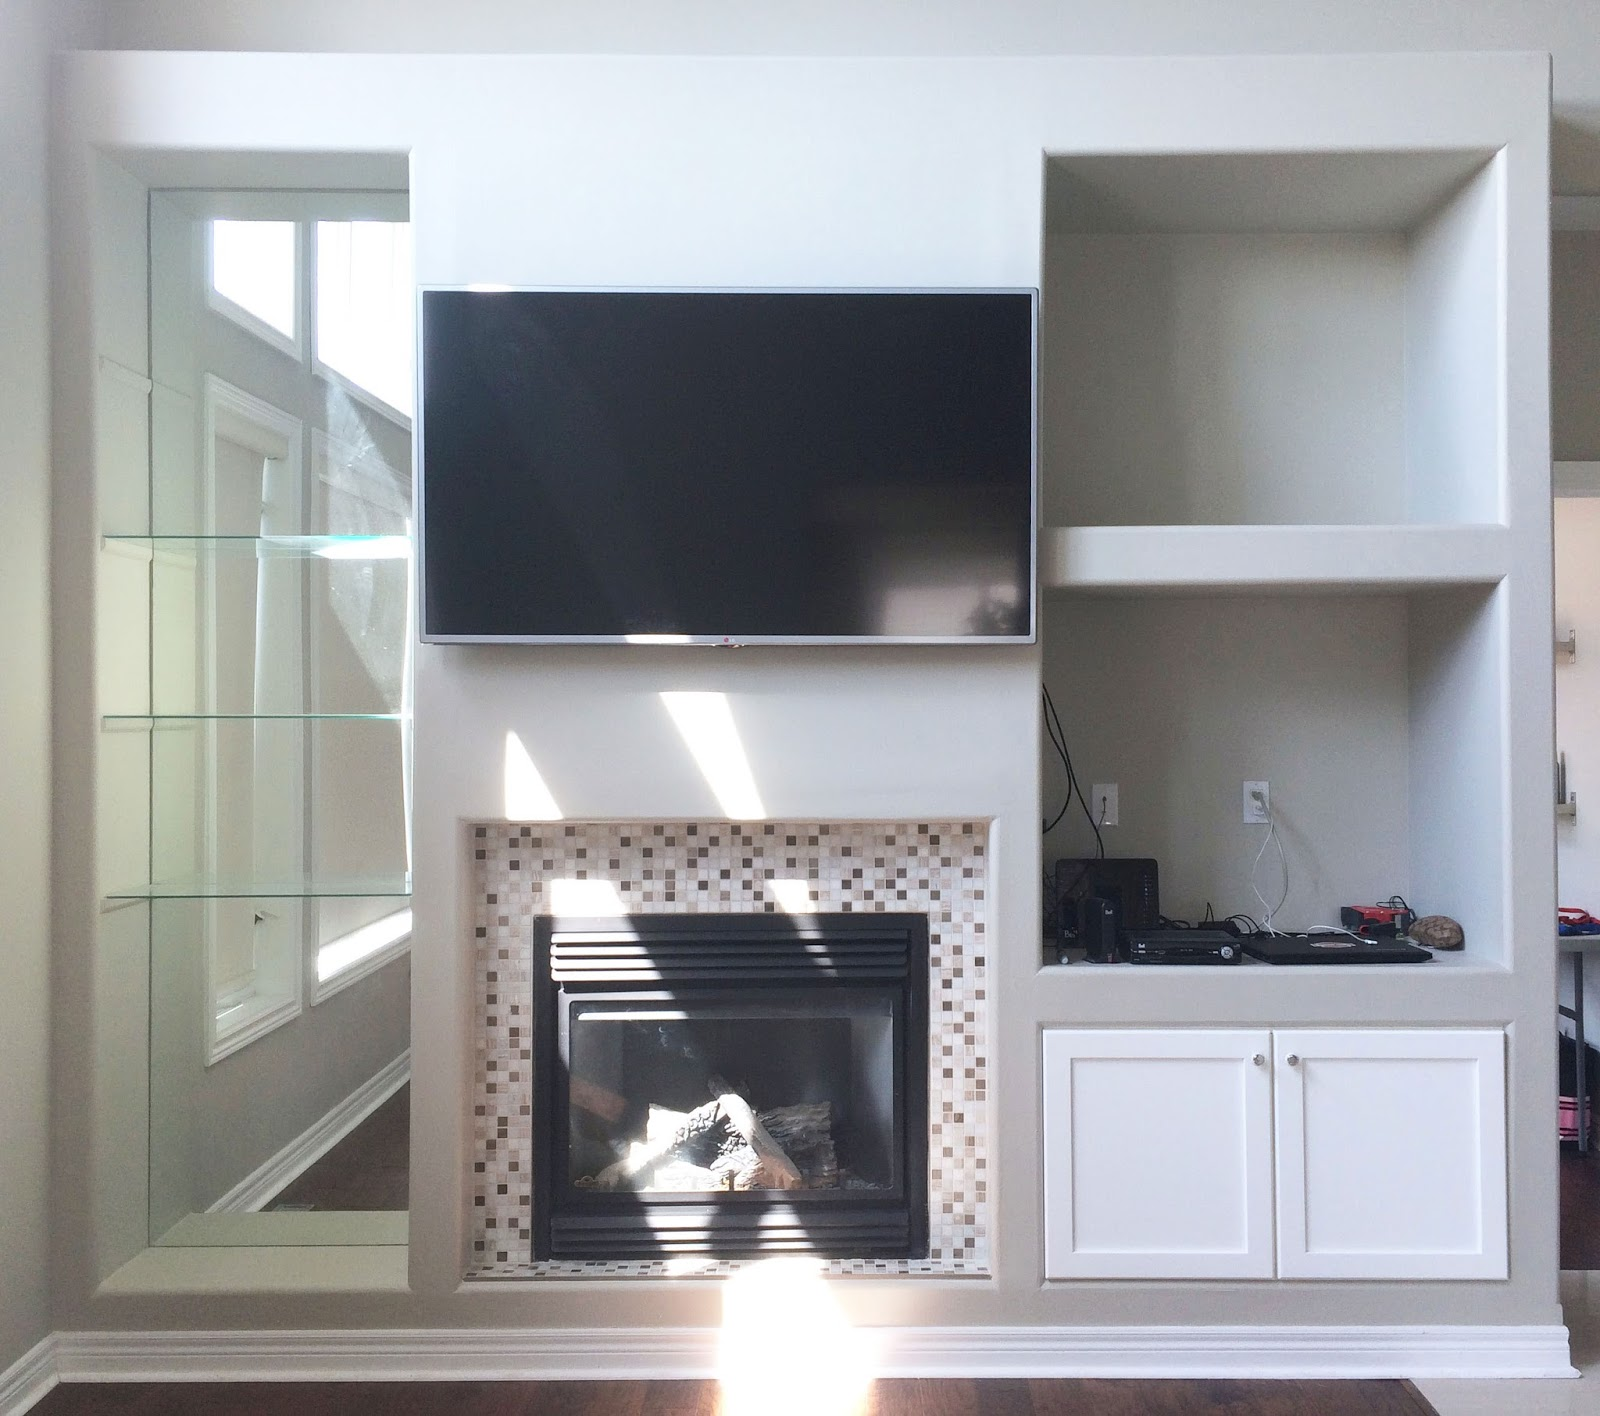 Fireplace Cabinet Makeover - Plans and Progress   Harlow & Thistle ...